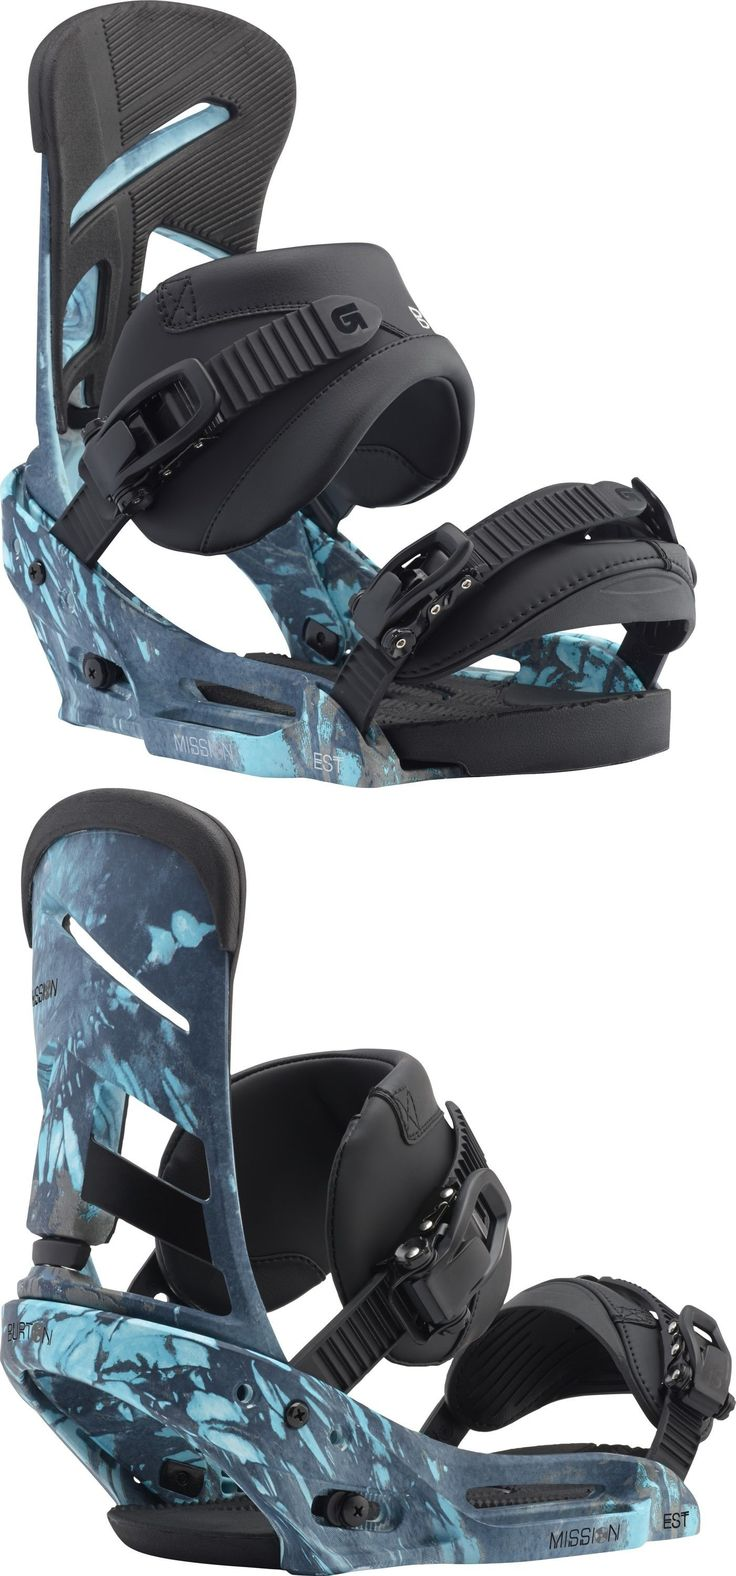 Bindings 21248: Burton - Mission Est | 2017 - Mens Snowboard Bindings - New | Blue Print -> BUY IT NOW ONLY: $174.95 on eBay!